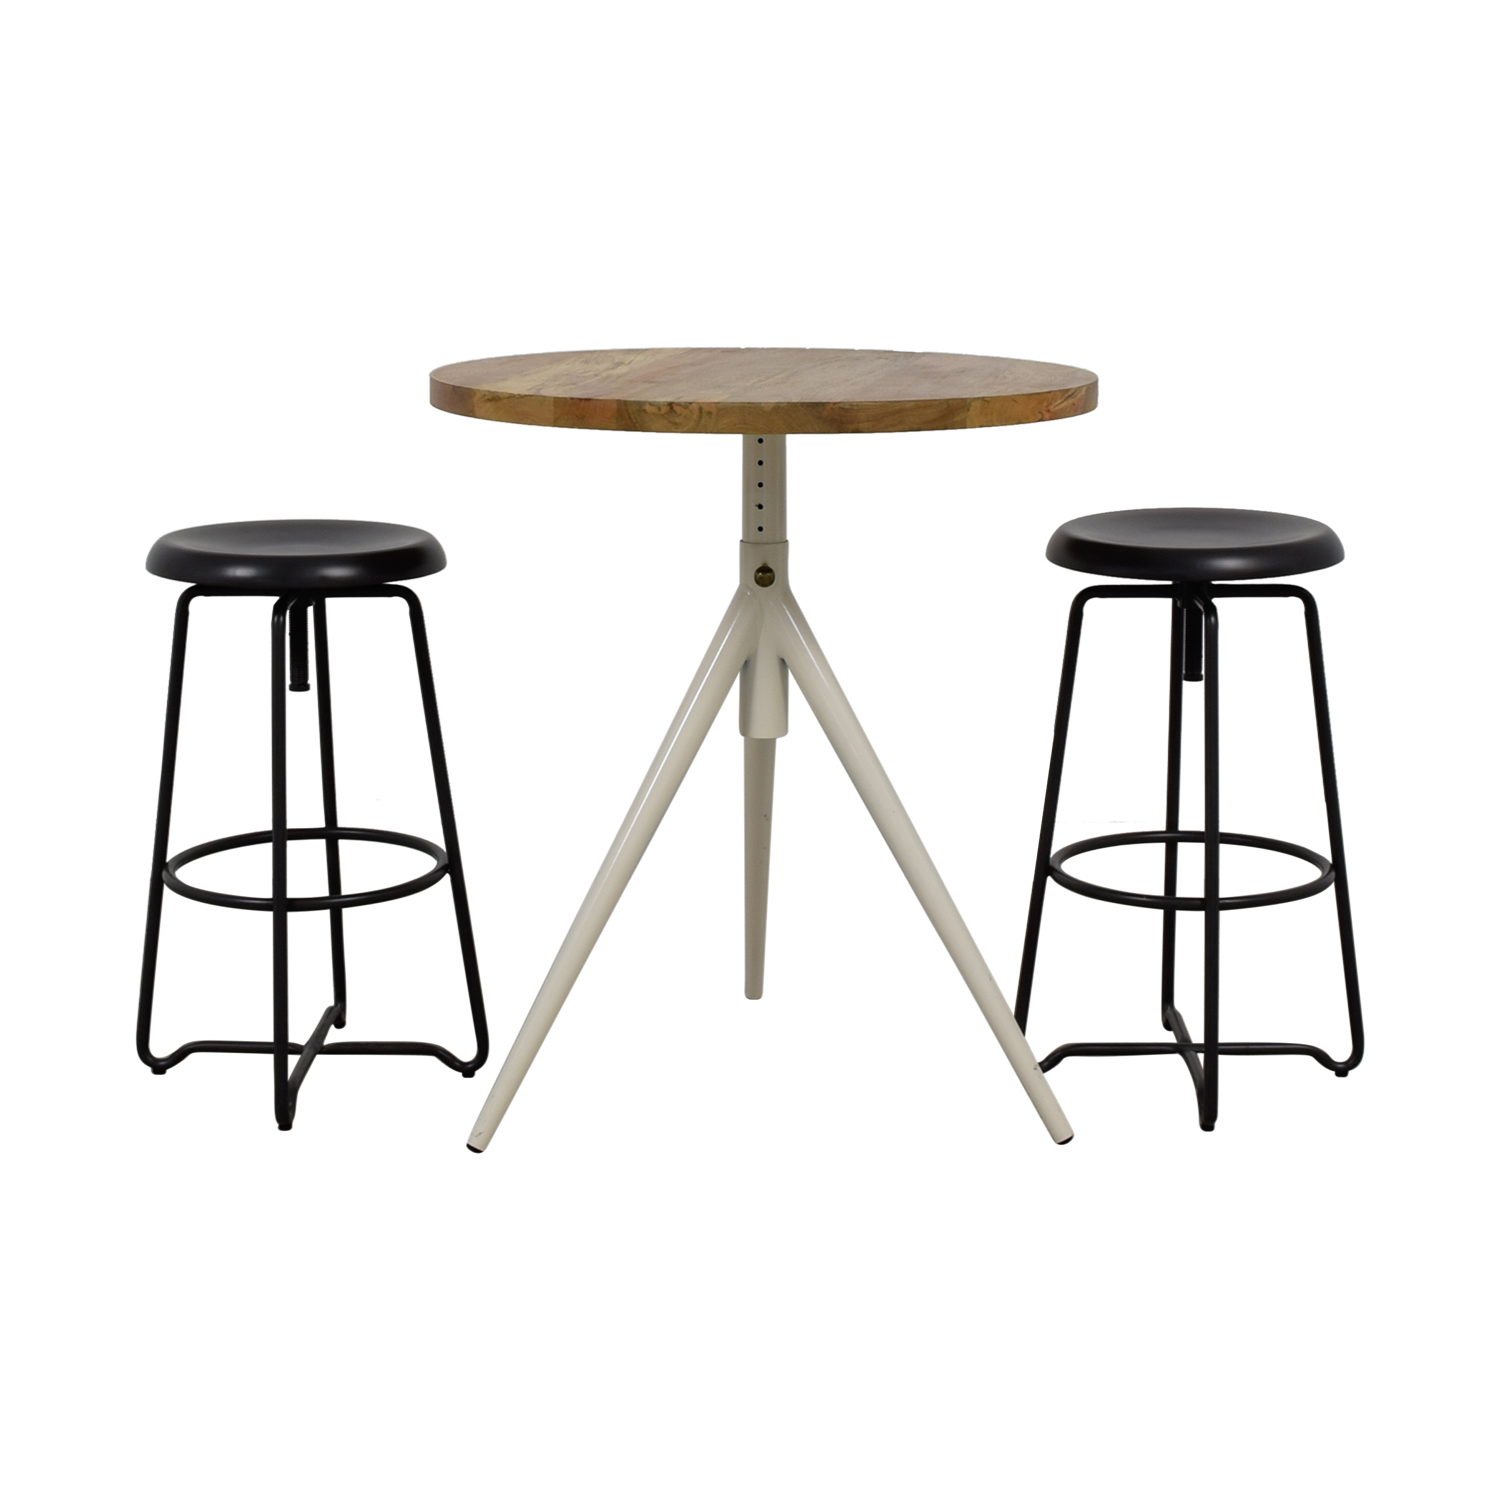 Rustic Wood Table and Bar Stools sale